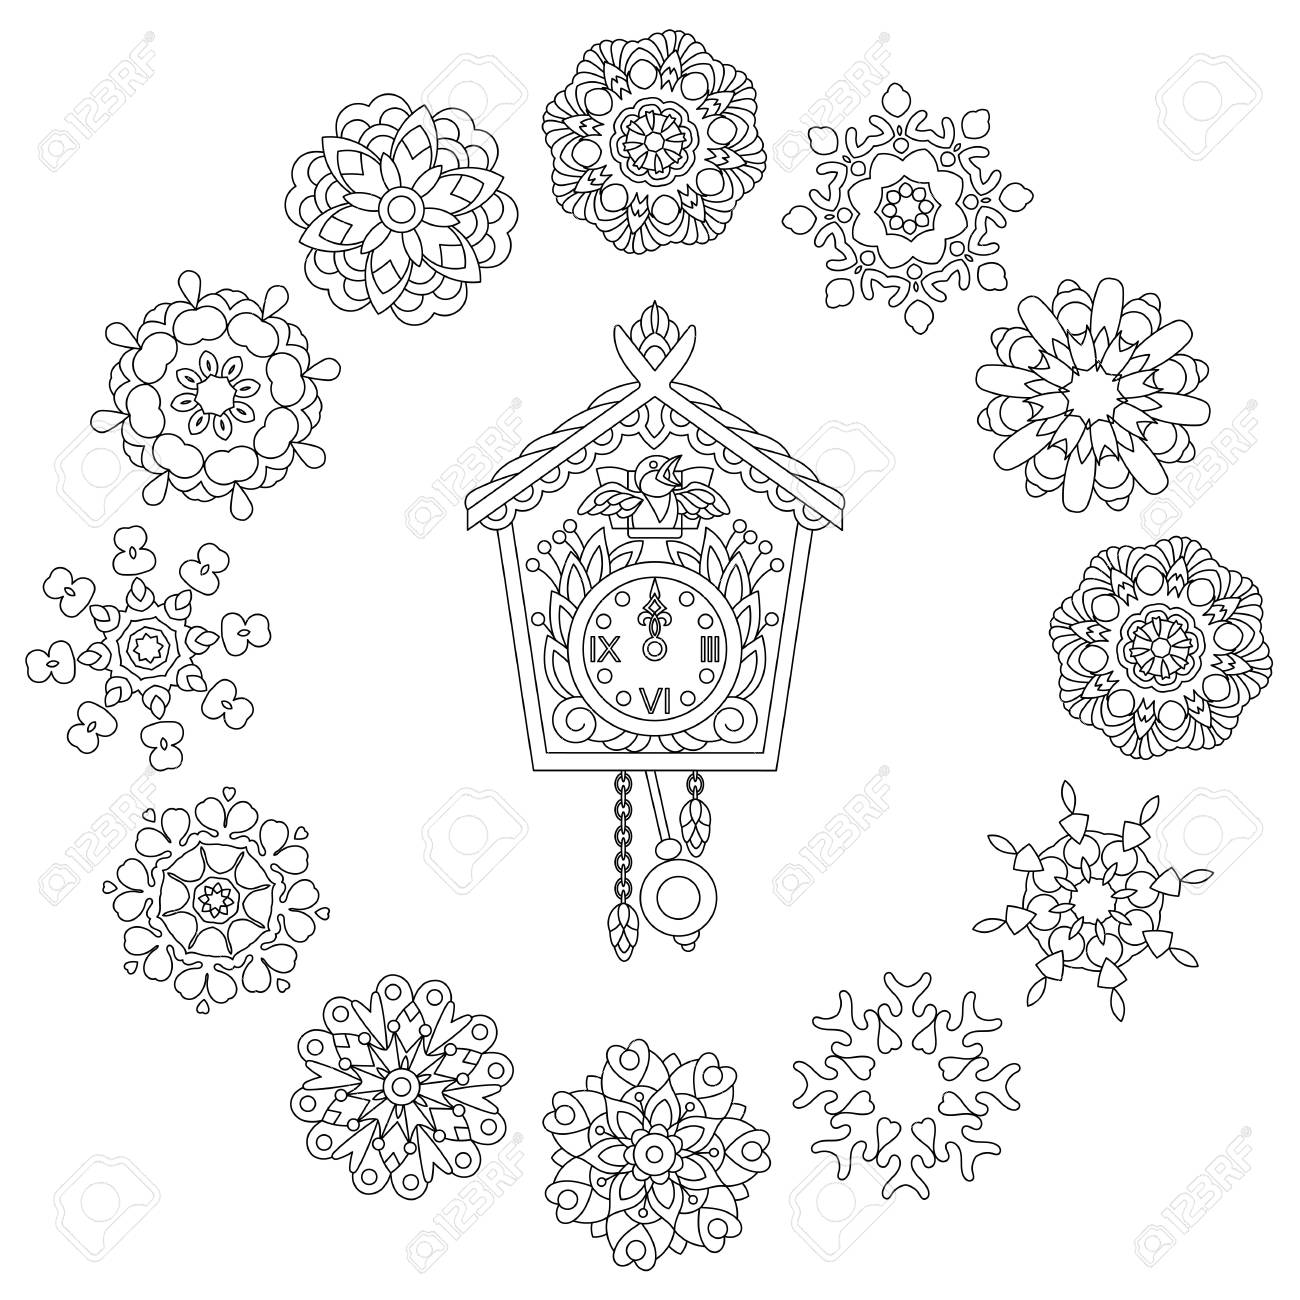 Christmas Coloring Page With Old Antique Wall Clock And Cuckoo ...